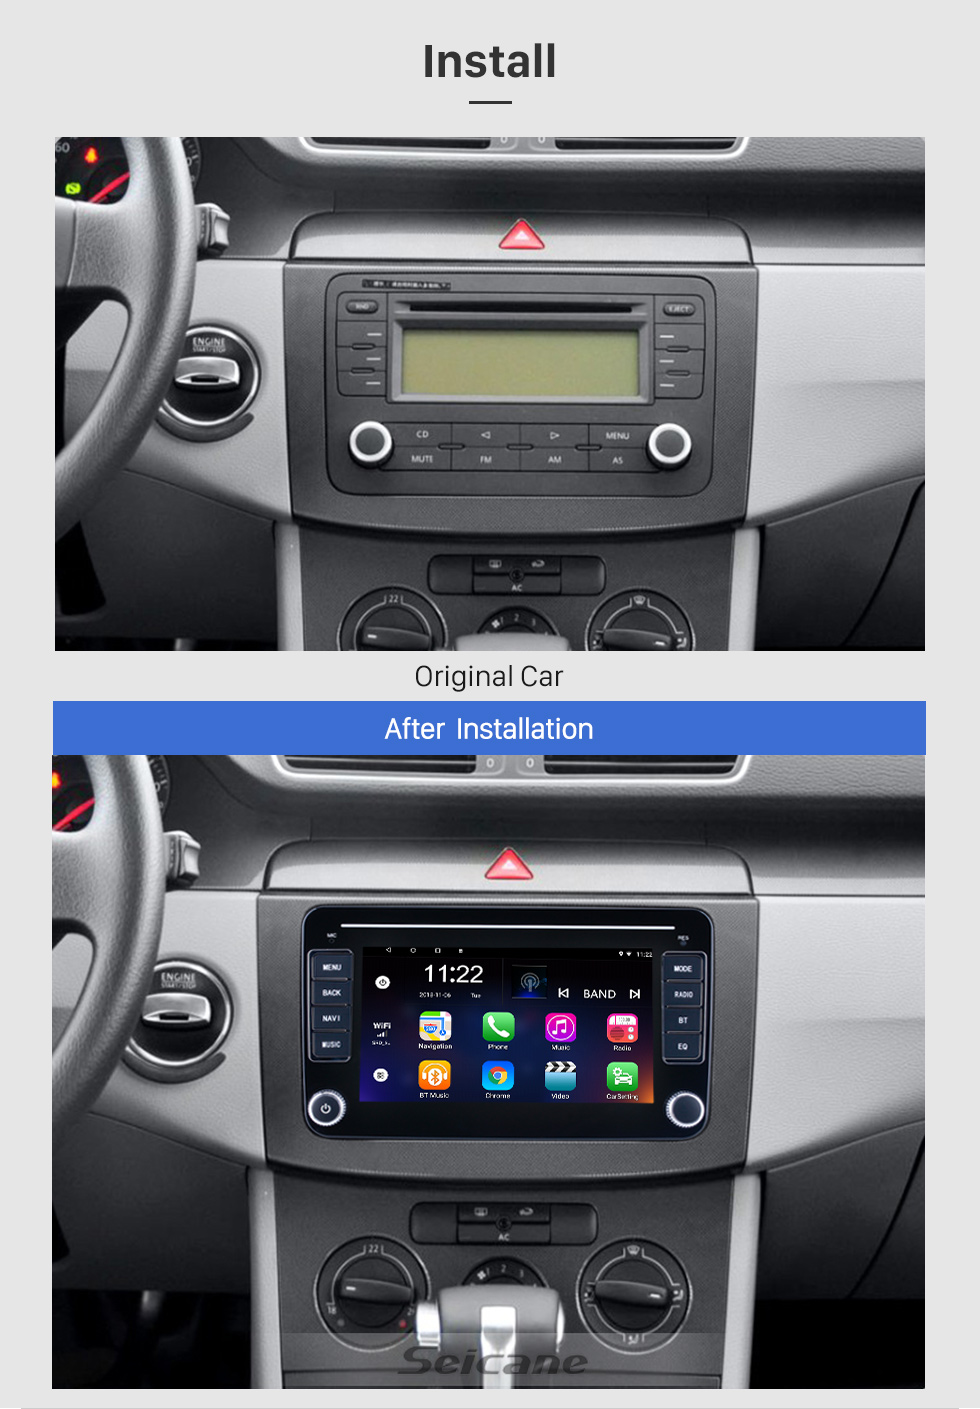 Seicane For VW Volkswagen Universal Radio 7 inch Android 10.0 GPS Navigation System With HD Touchscreen Bluetooth support Carplay DAB+